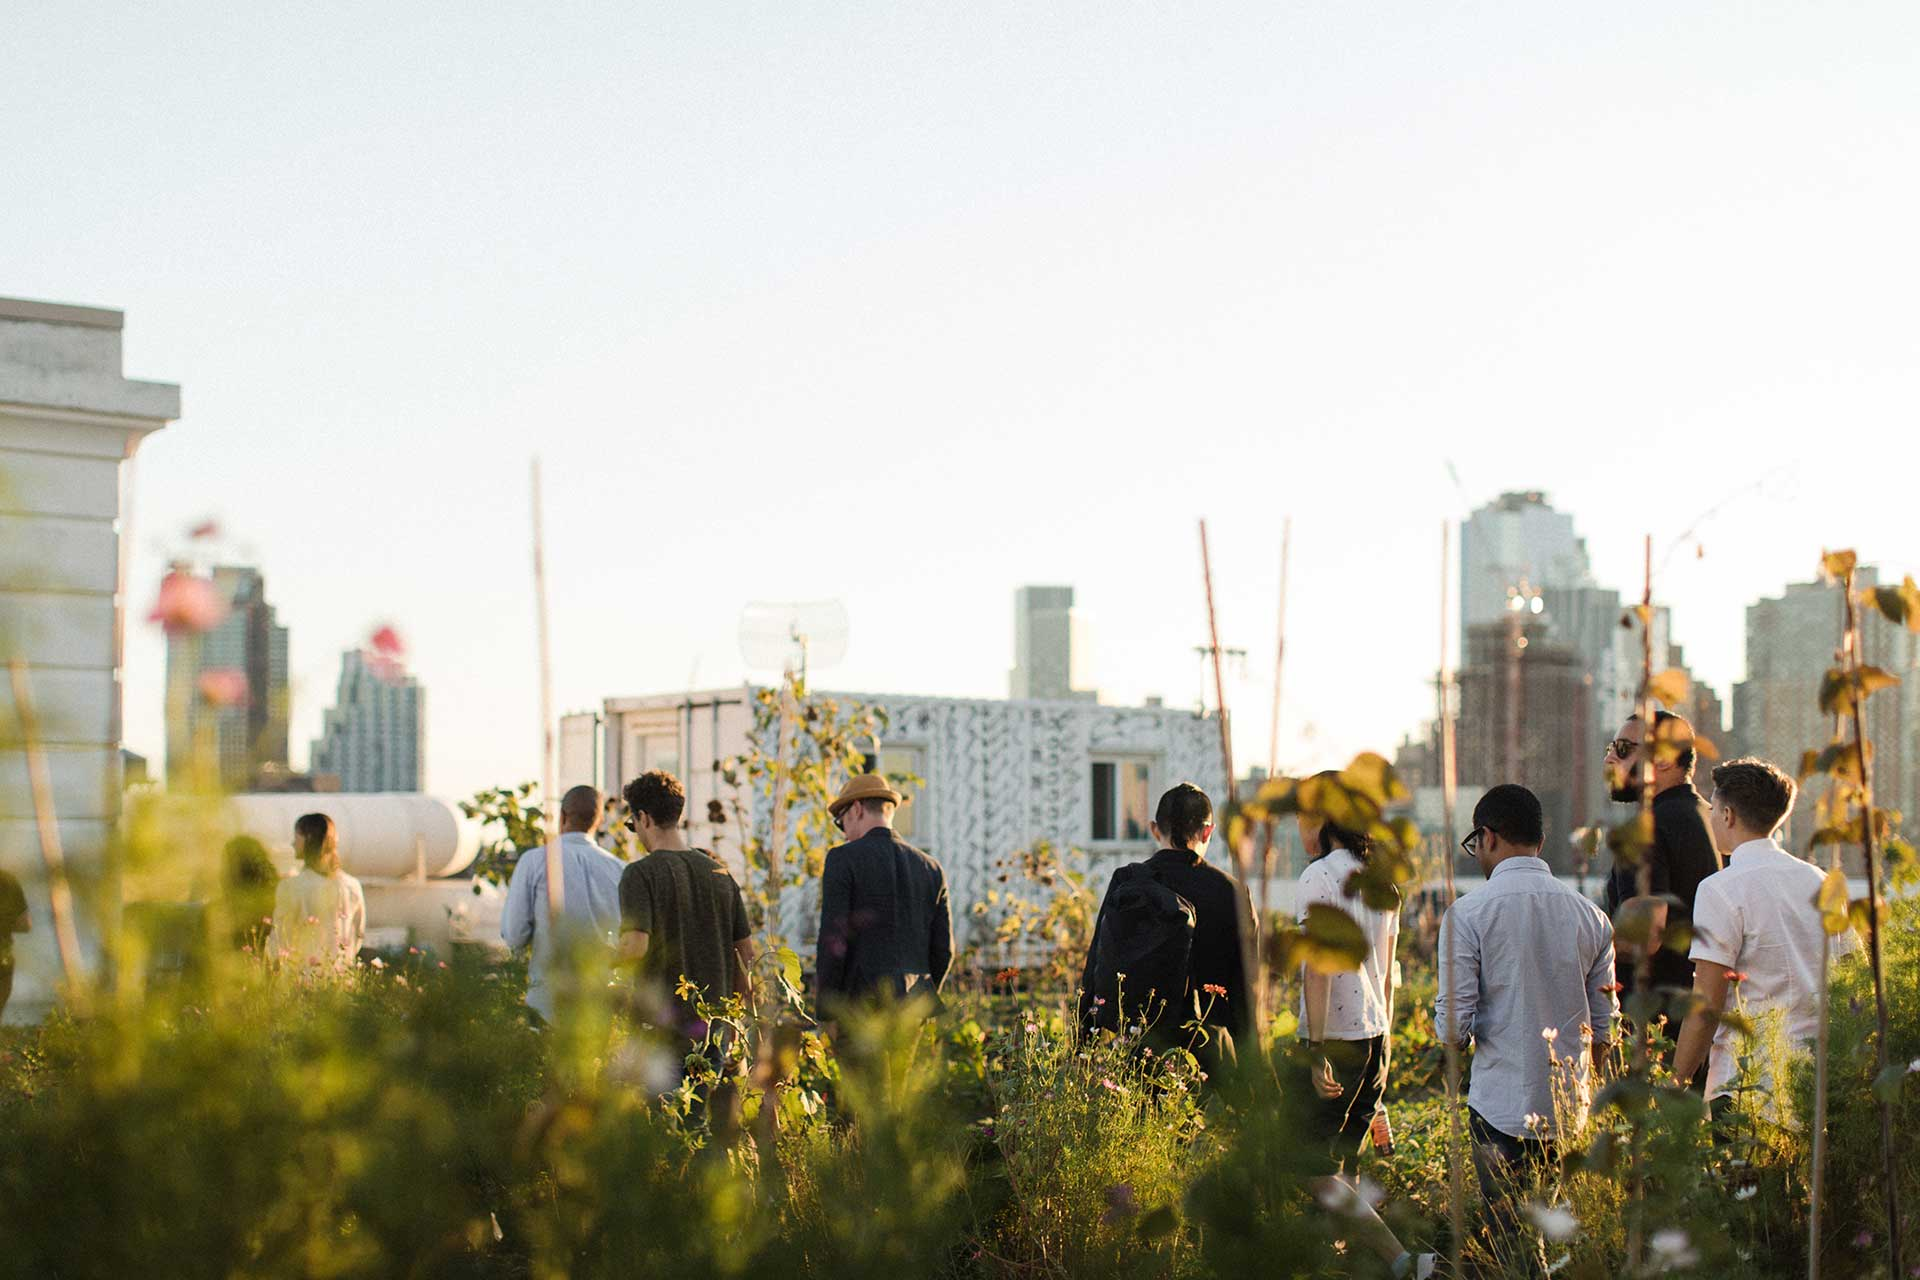 A group of people walk through a rooftop garden.